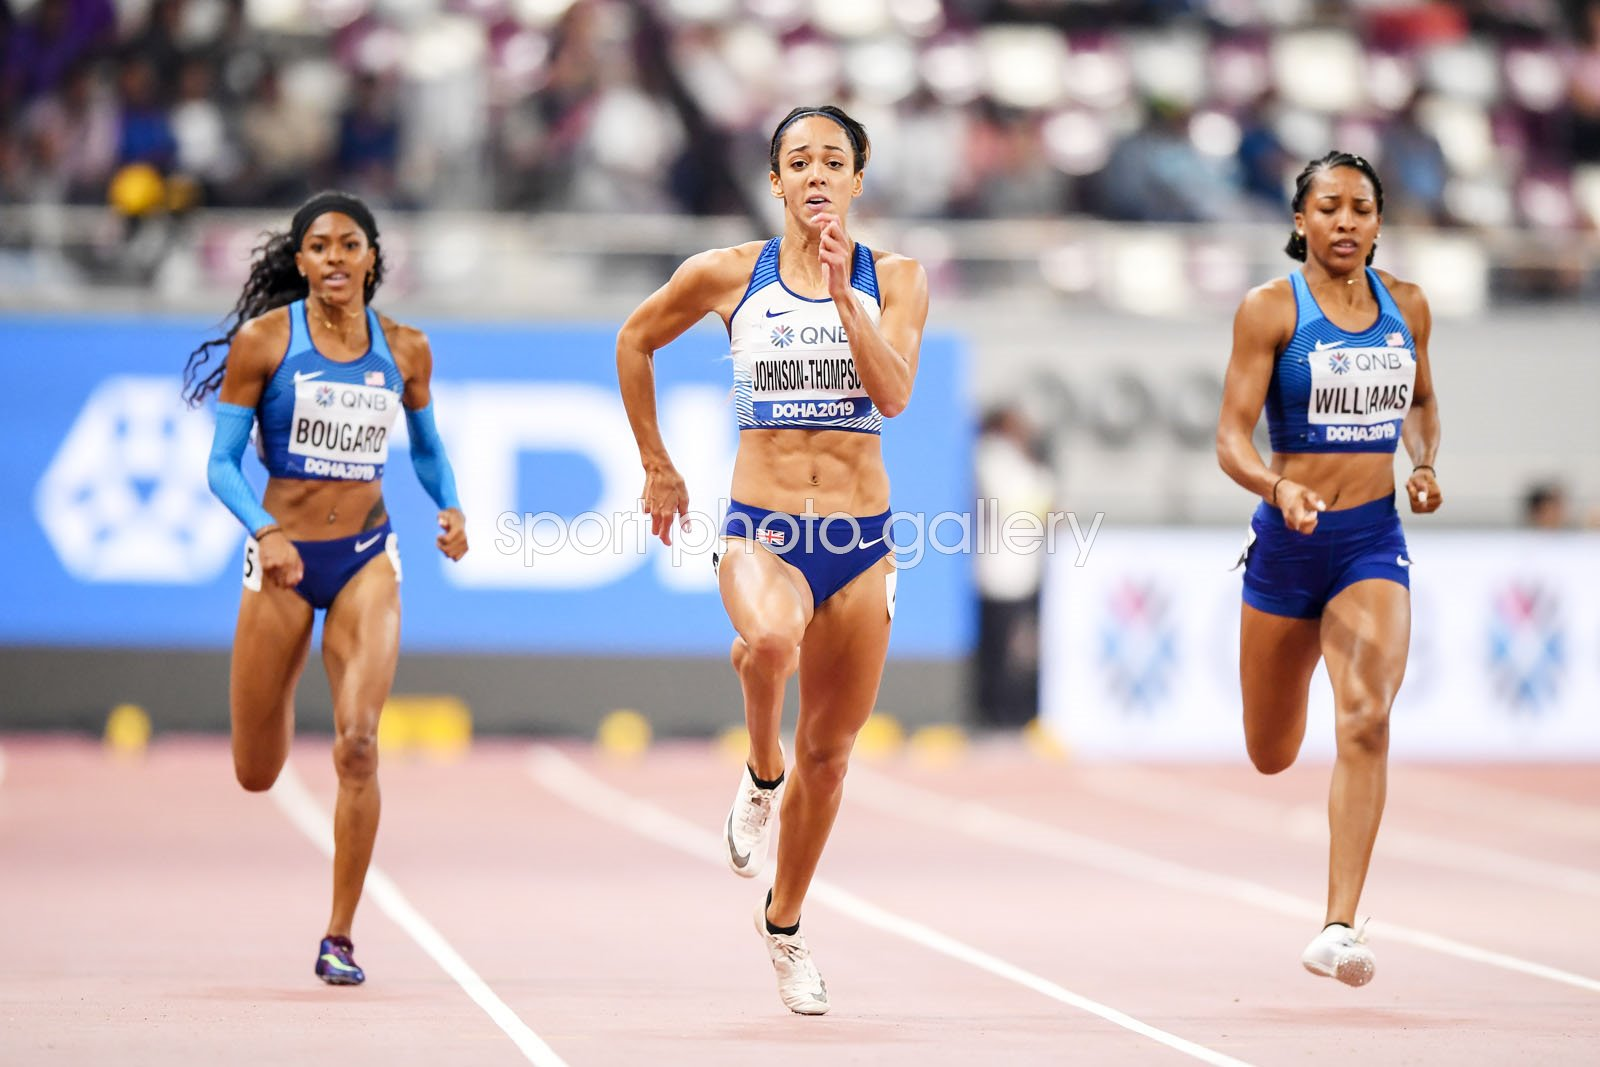 Katarina Johnson-Thompson Great Britain Heptathlon 200m Worlds Doha 2019